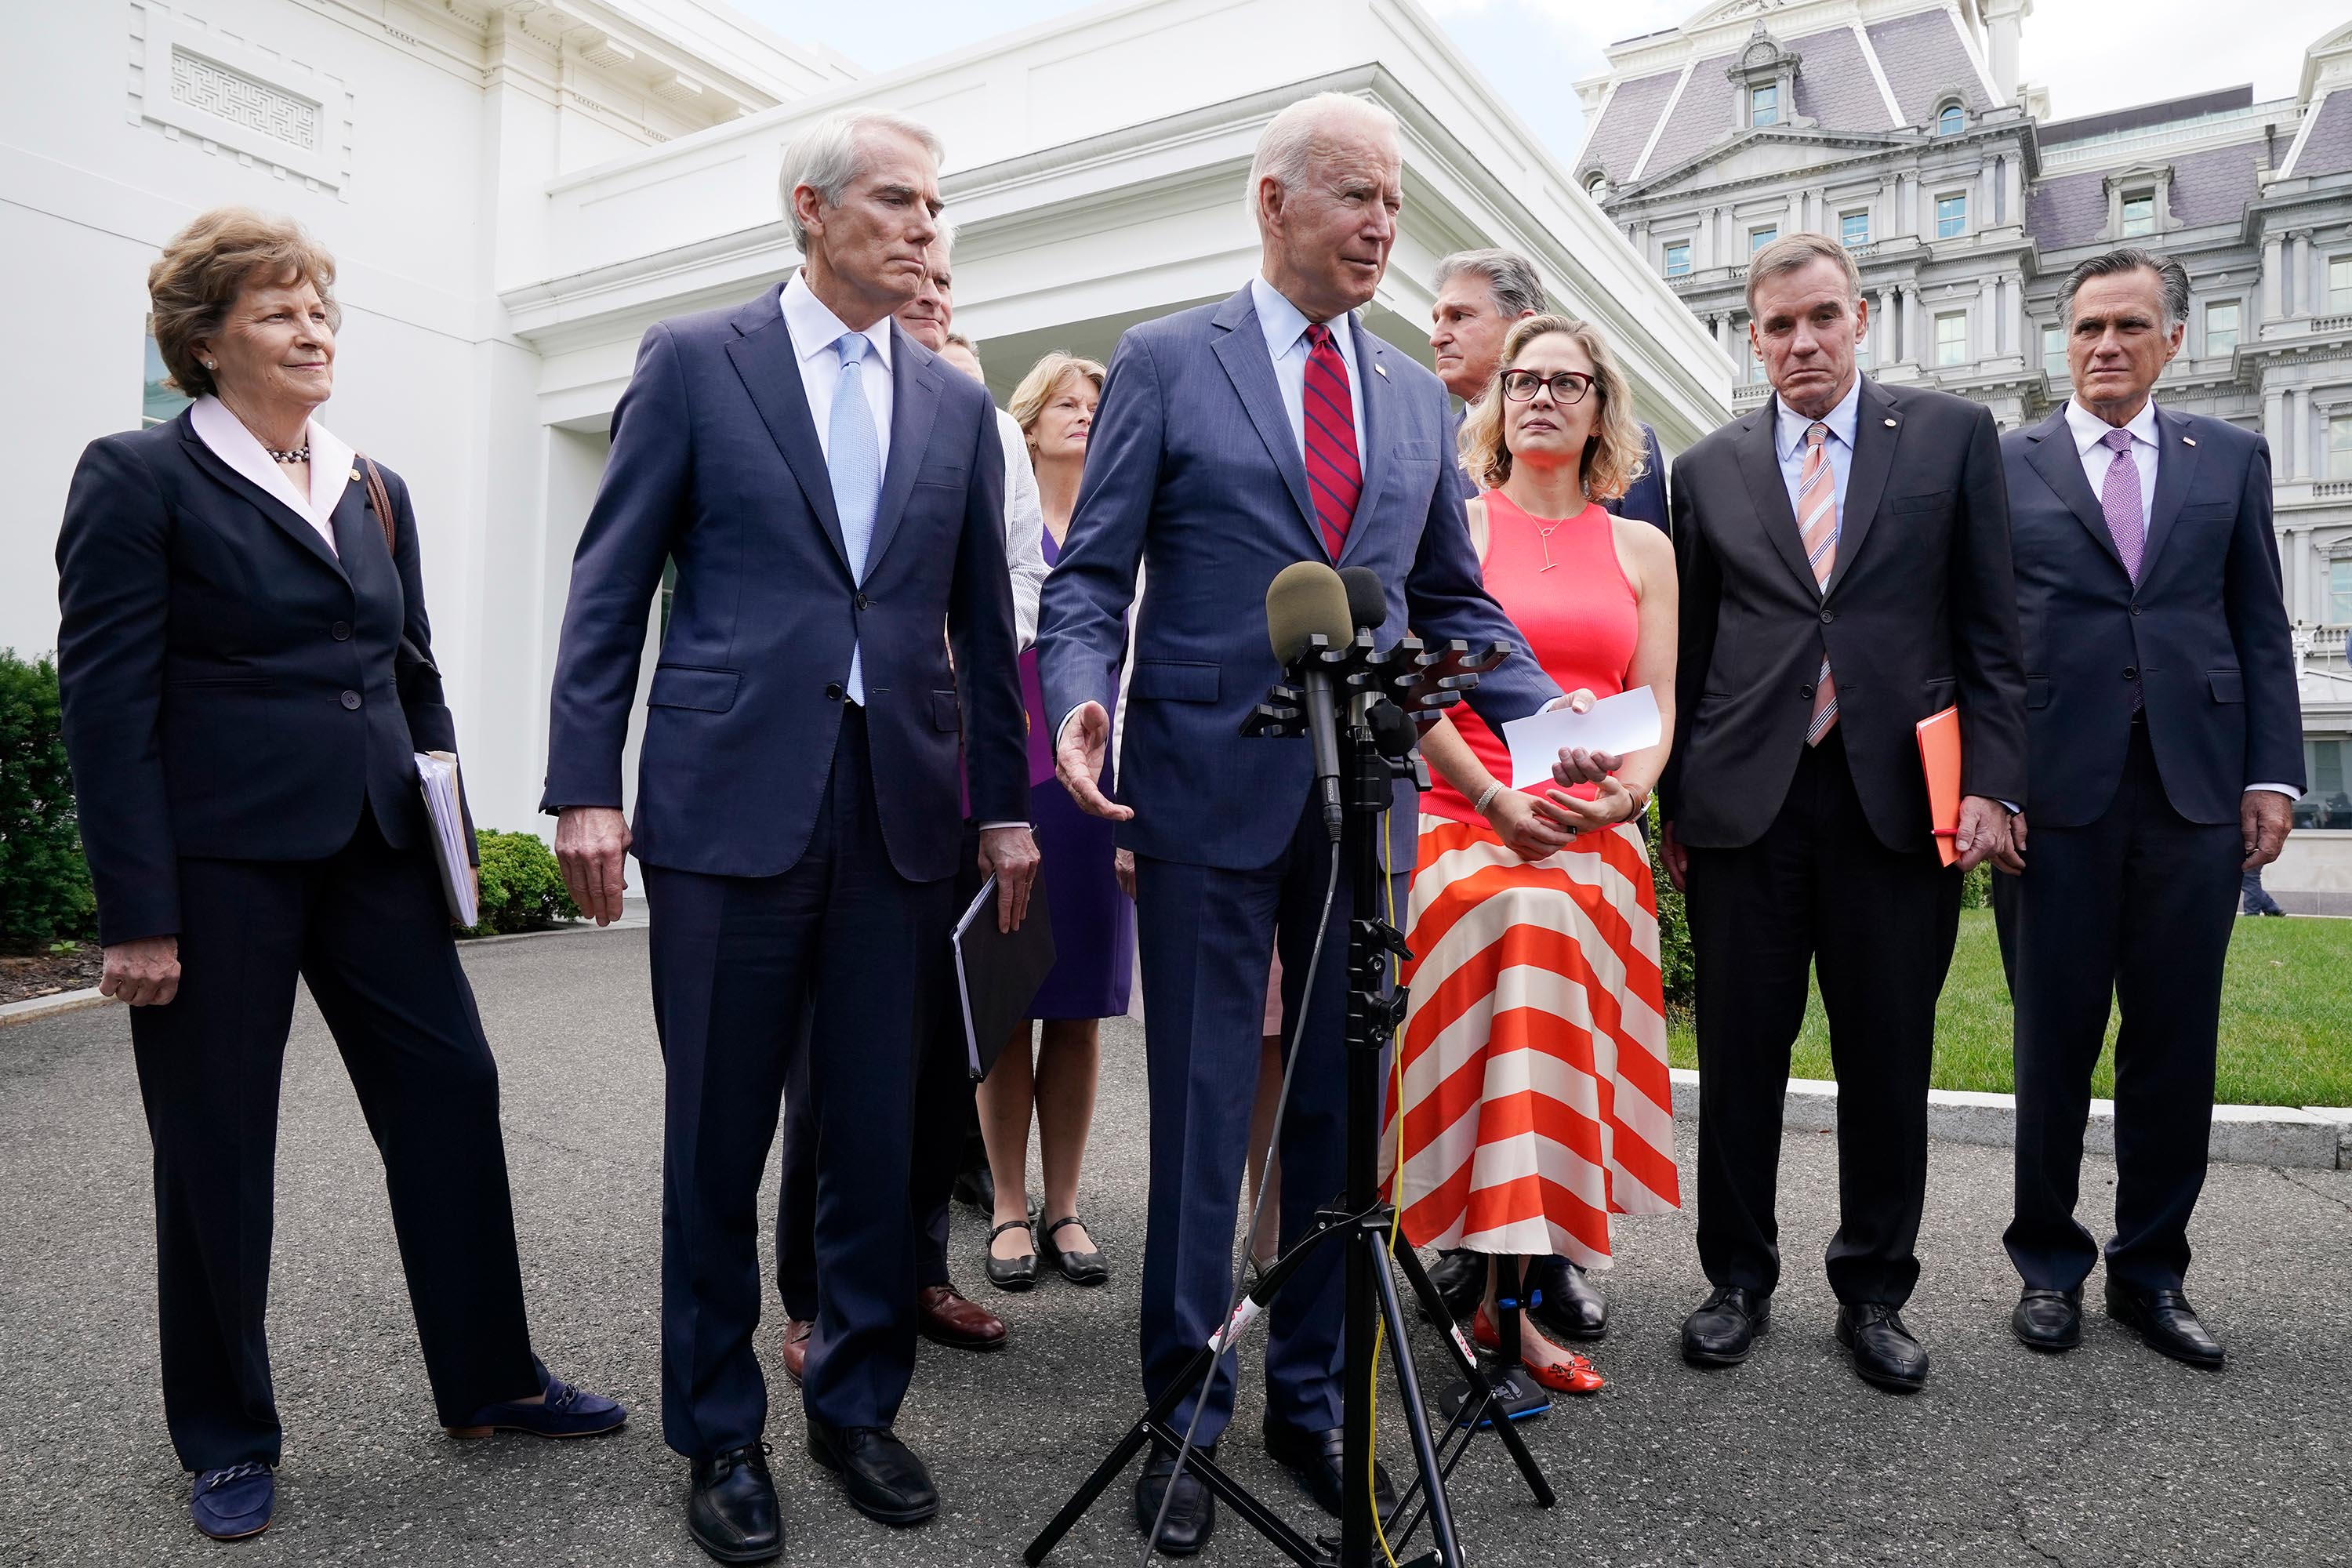 The two-track twostep: How the bipartisan infrastructure deal came together and nearly fell apart in 24 hours